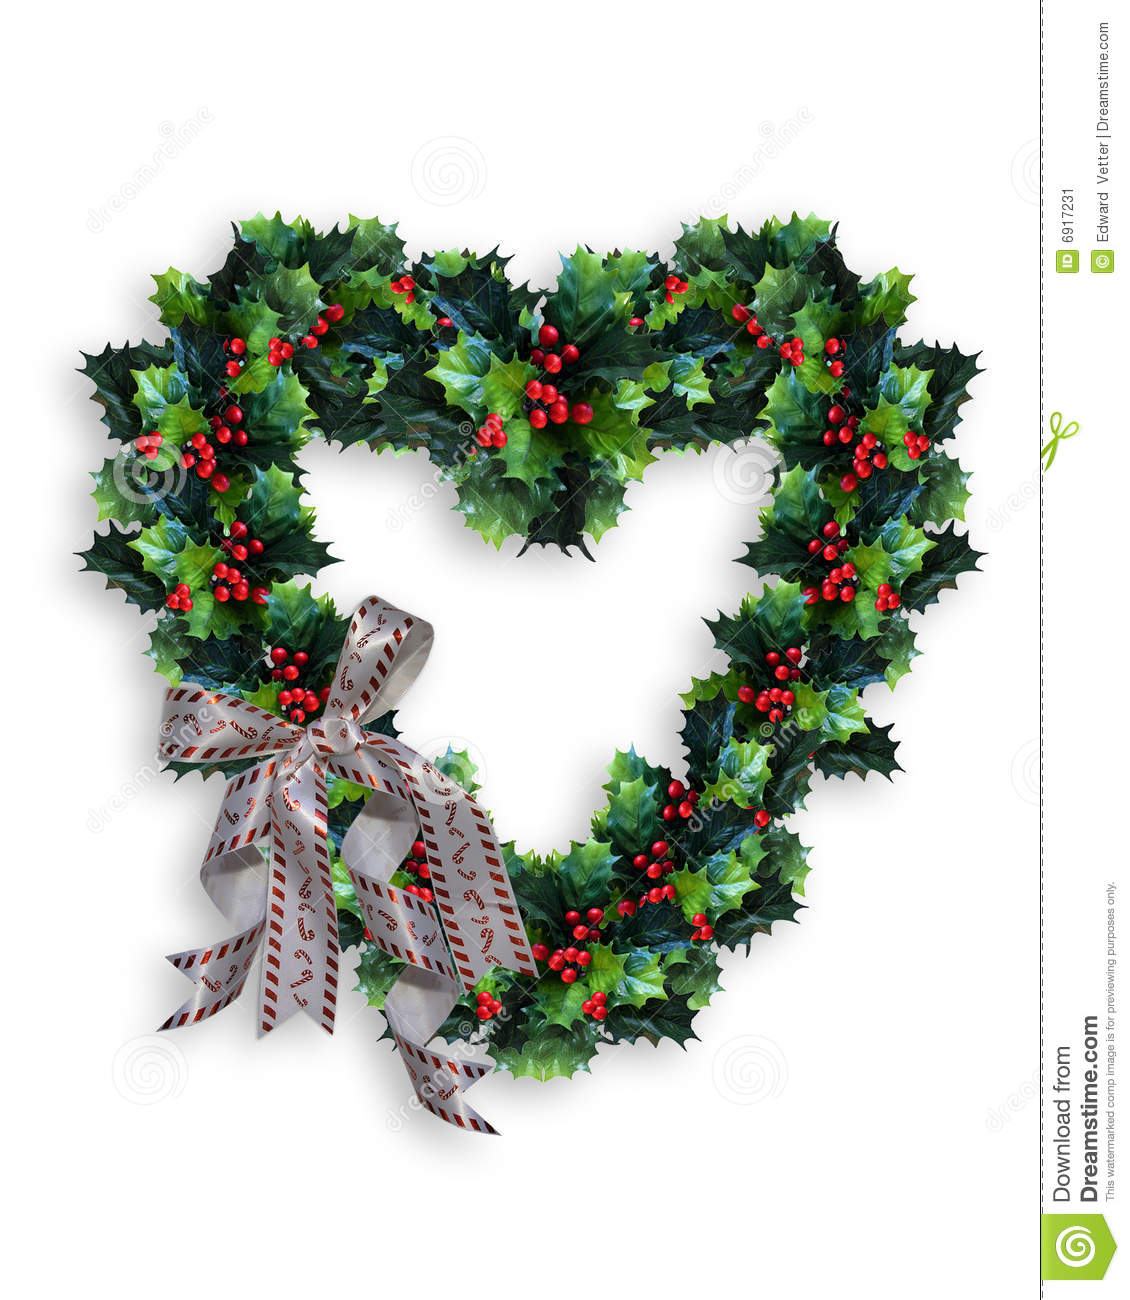 ... in the shape of a heart for Christmas Card, background or clip art